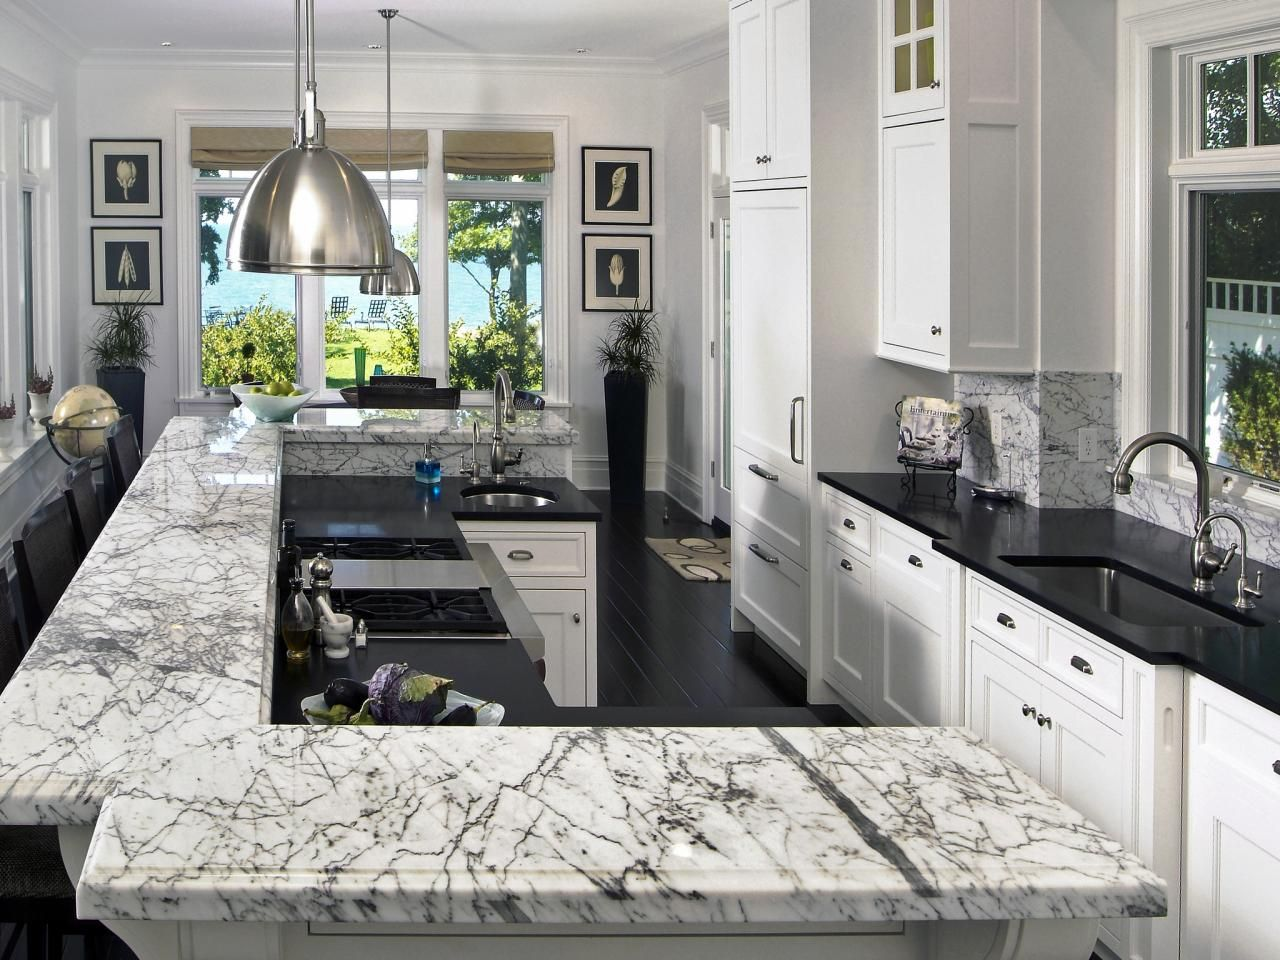 10 High-End Kitchen Countertop Choices | White marble, Breakfast ...